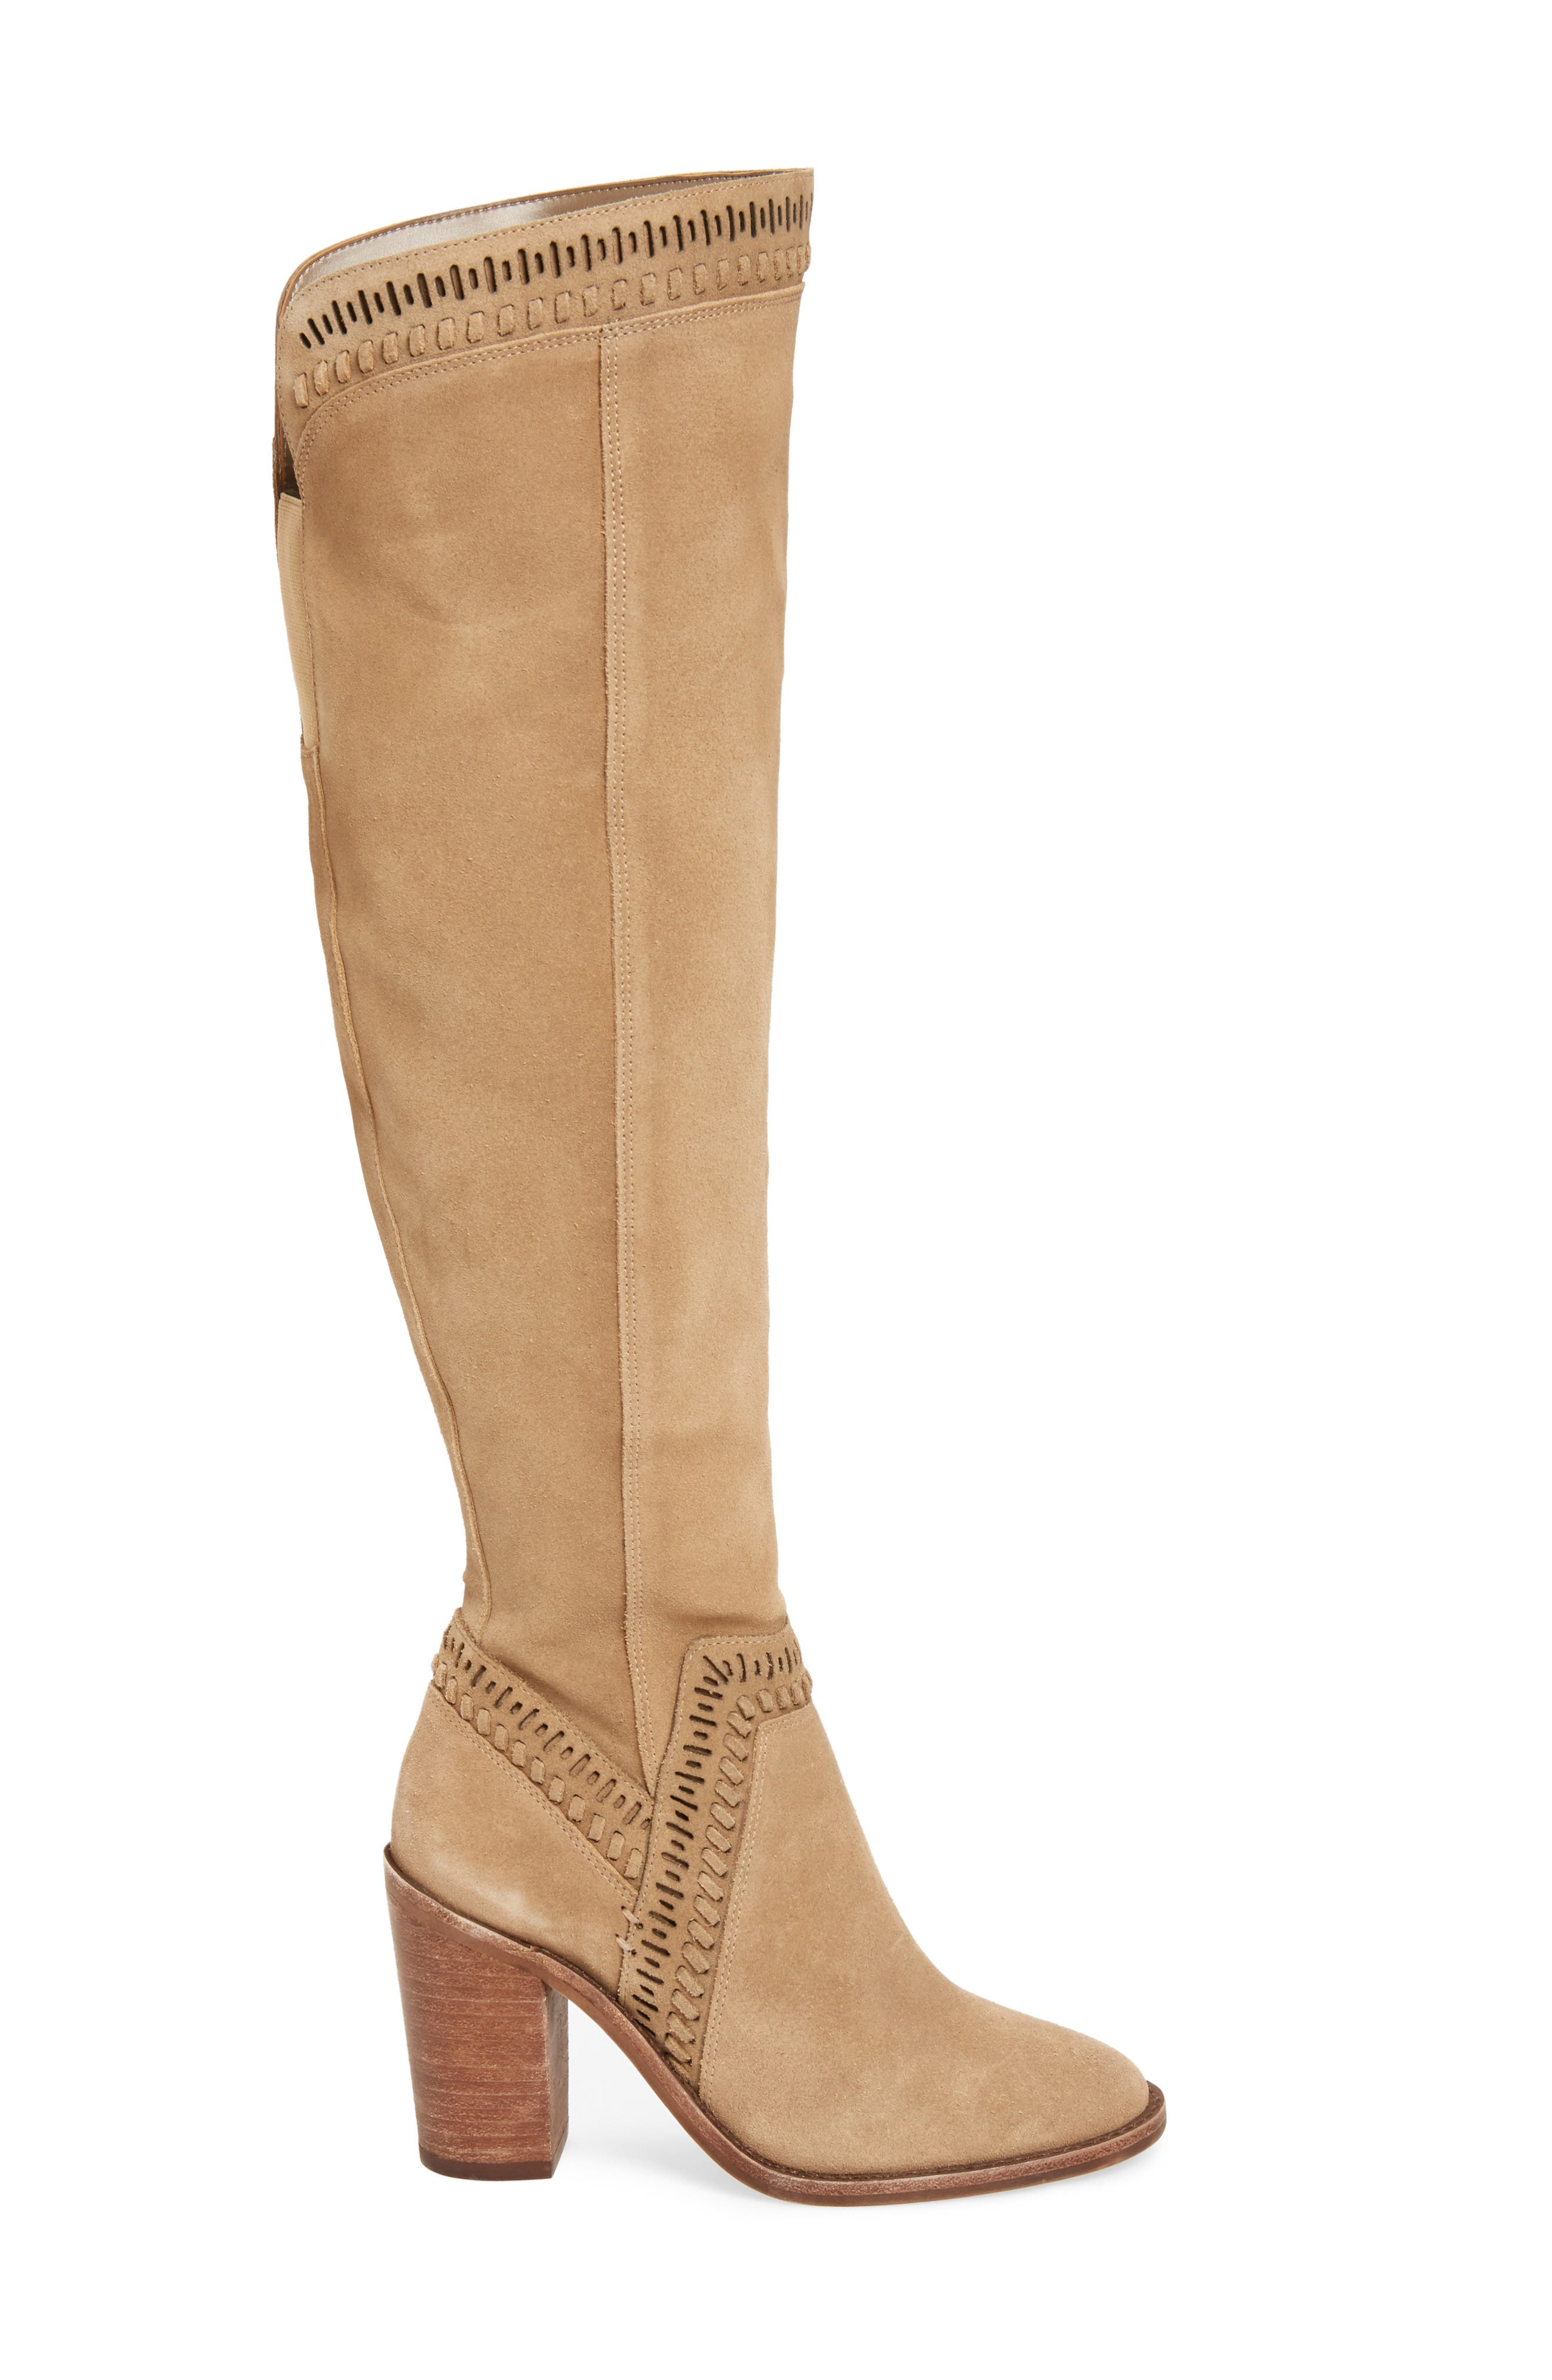 Madolee Over the Knee Boot,                             Alternate thumbnail 12, color,